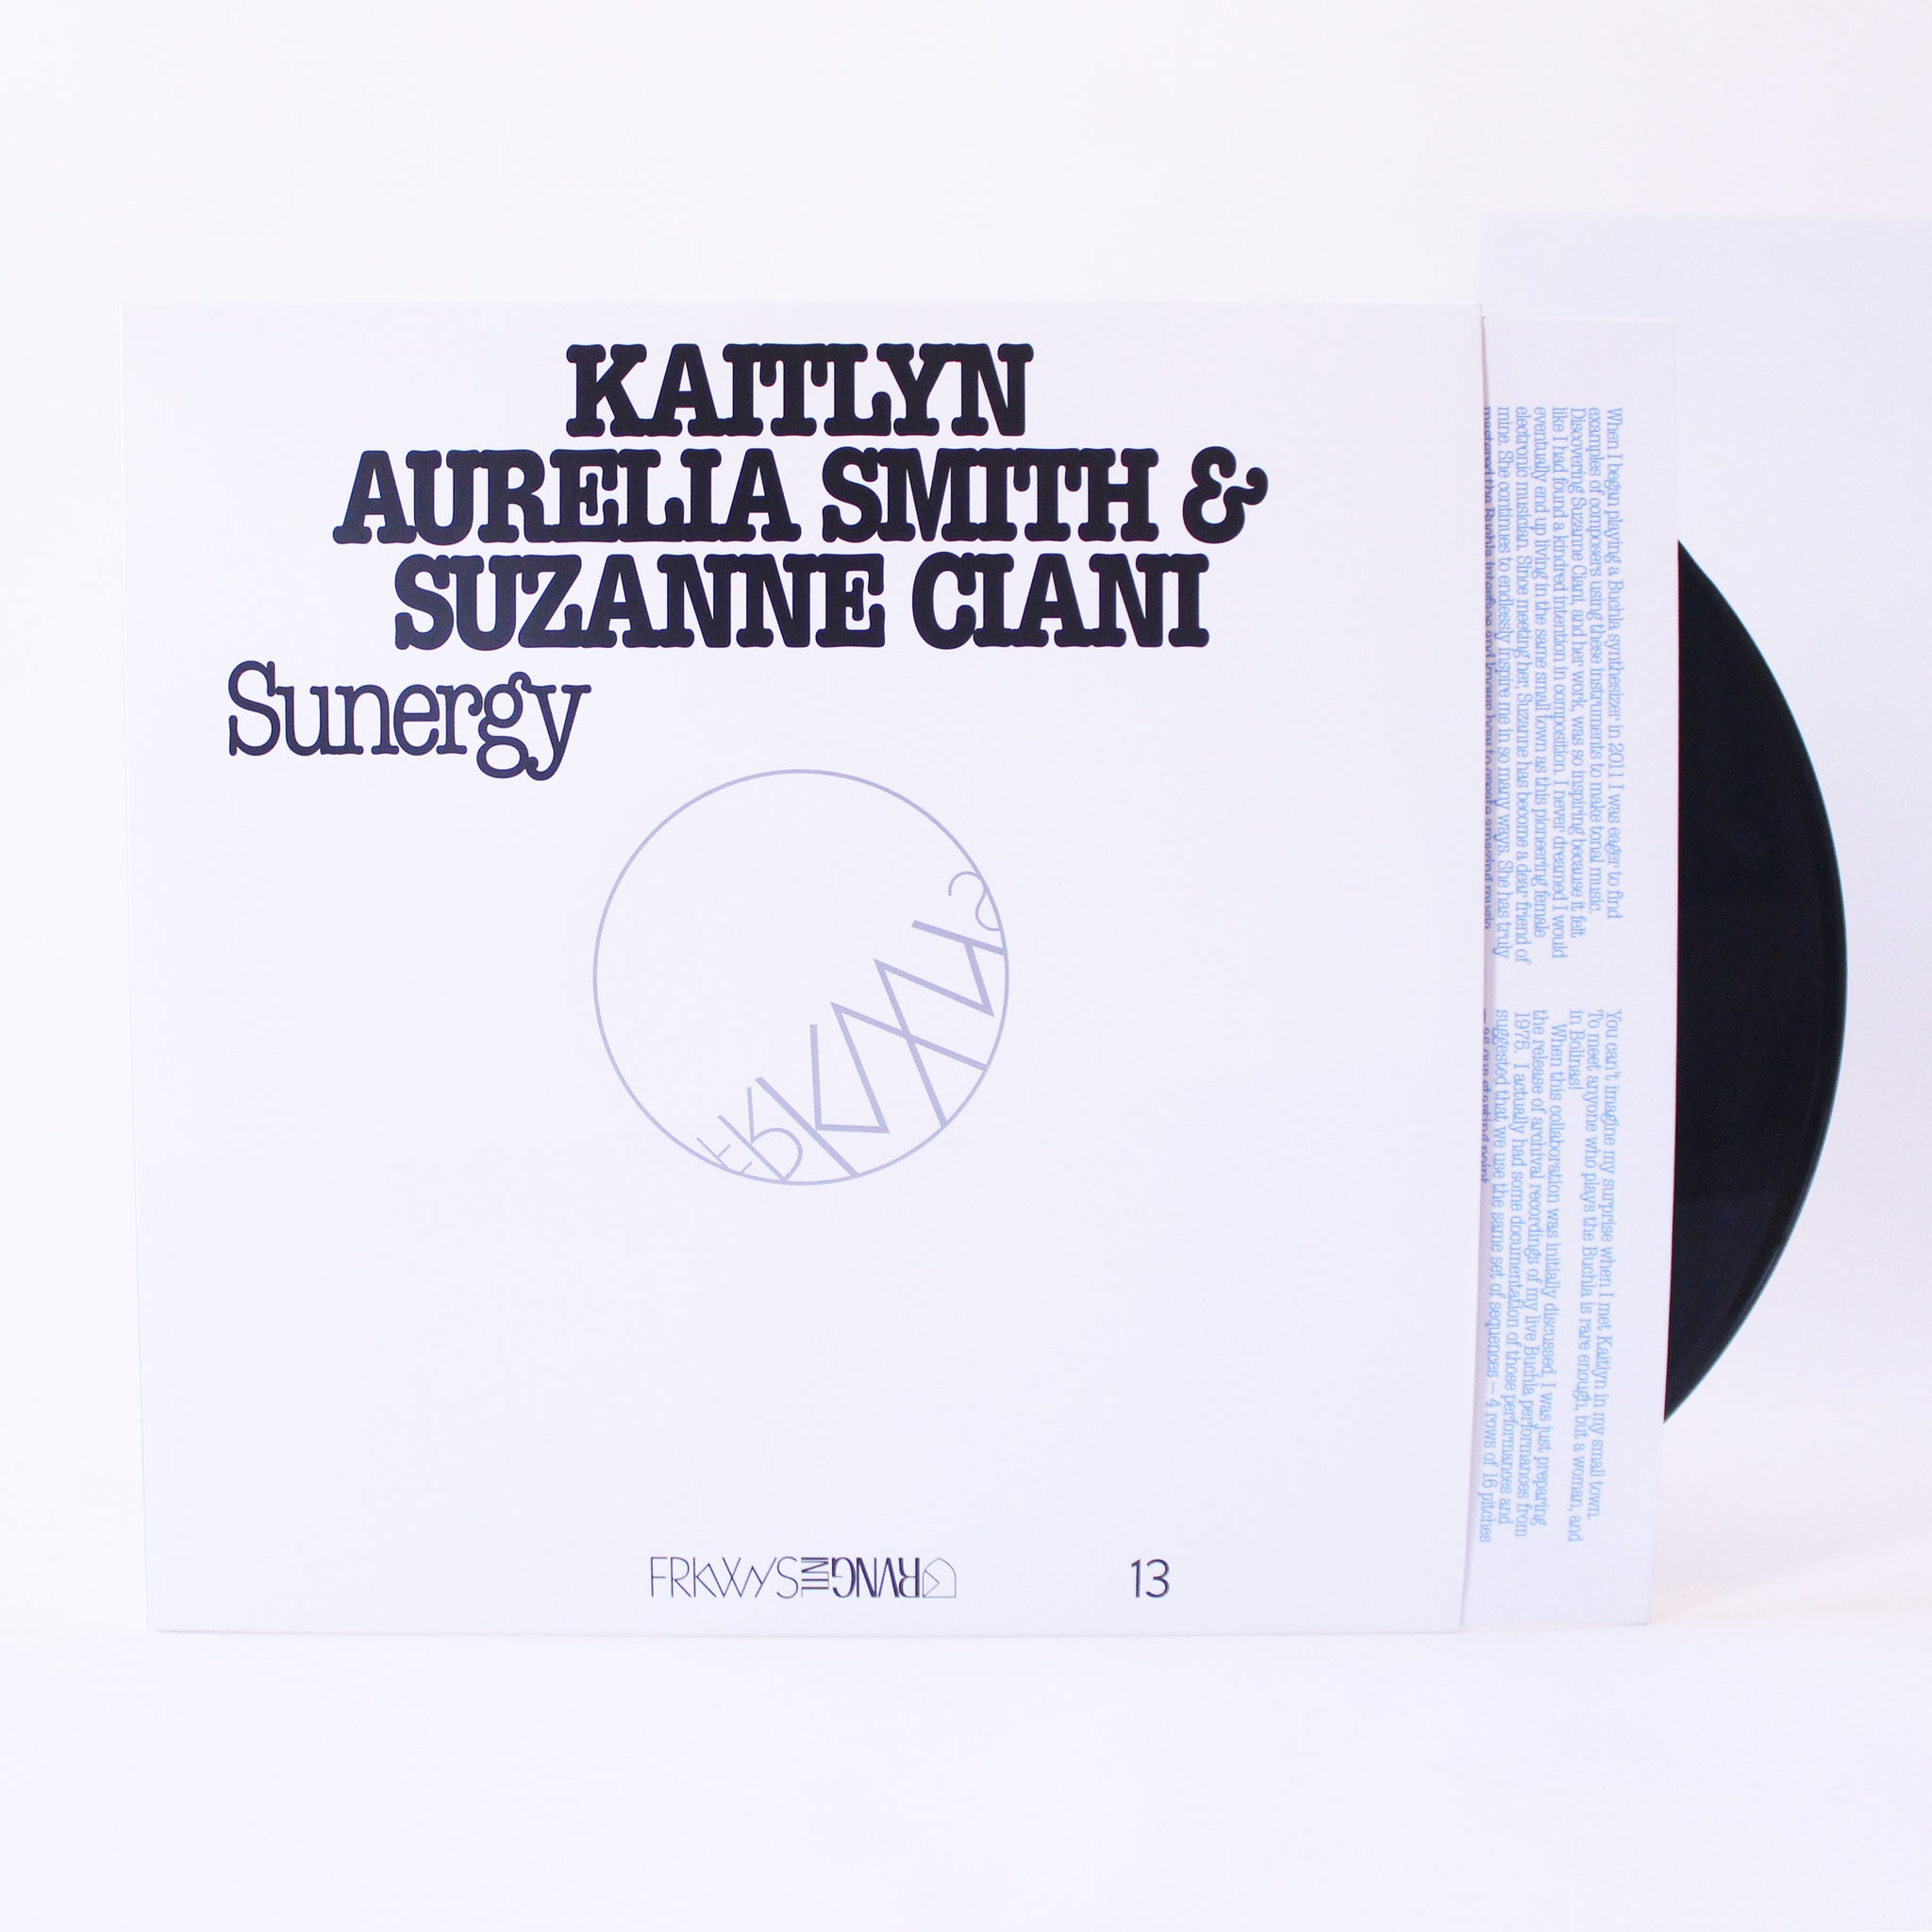 Kaitlyn Aurelia Smith & Suzanne Ciani - Sunergy